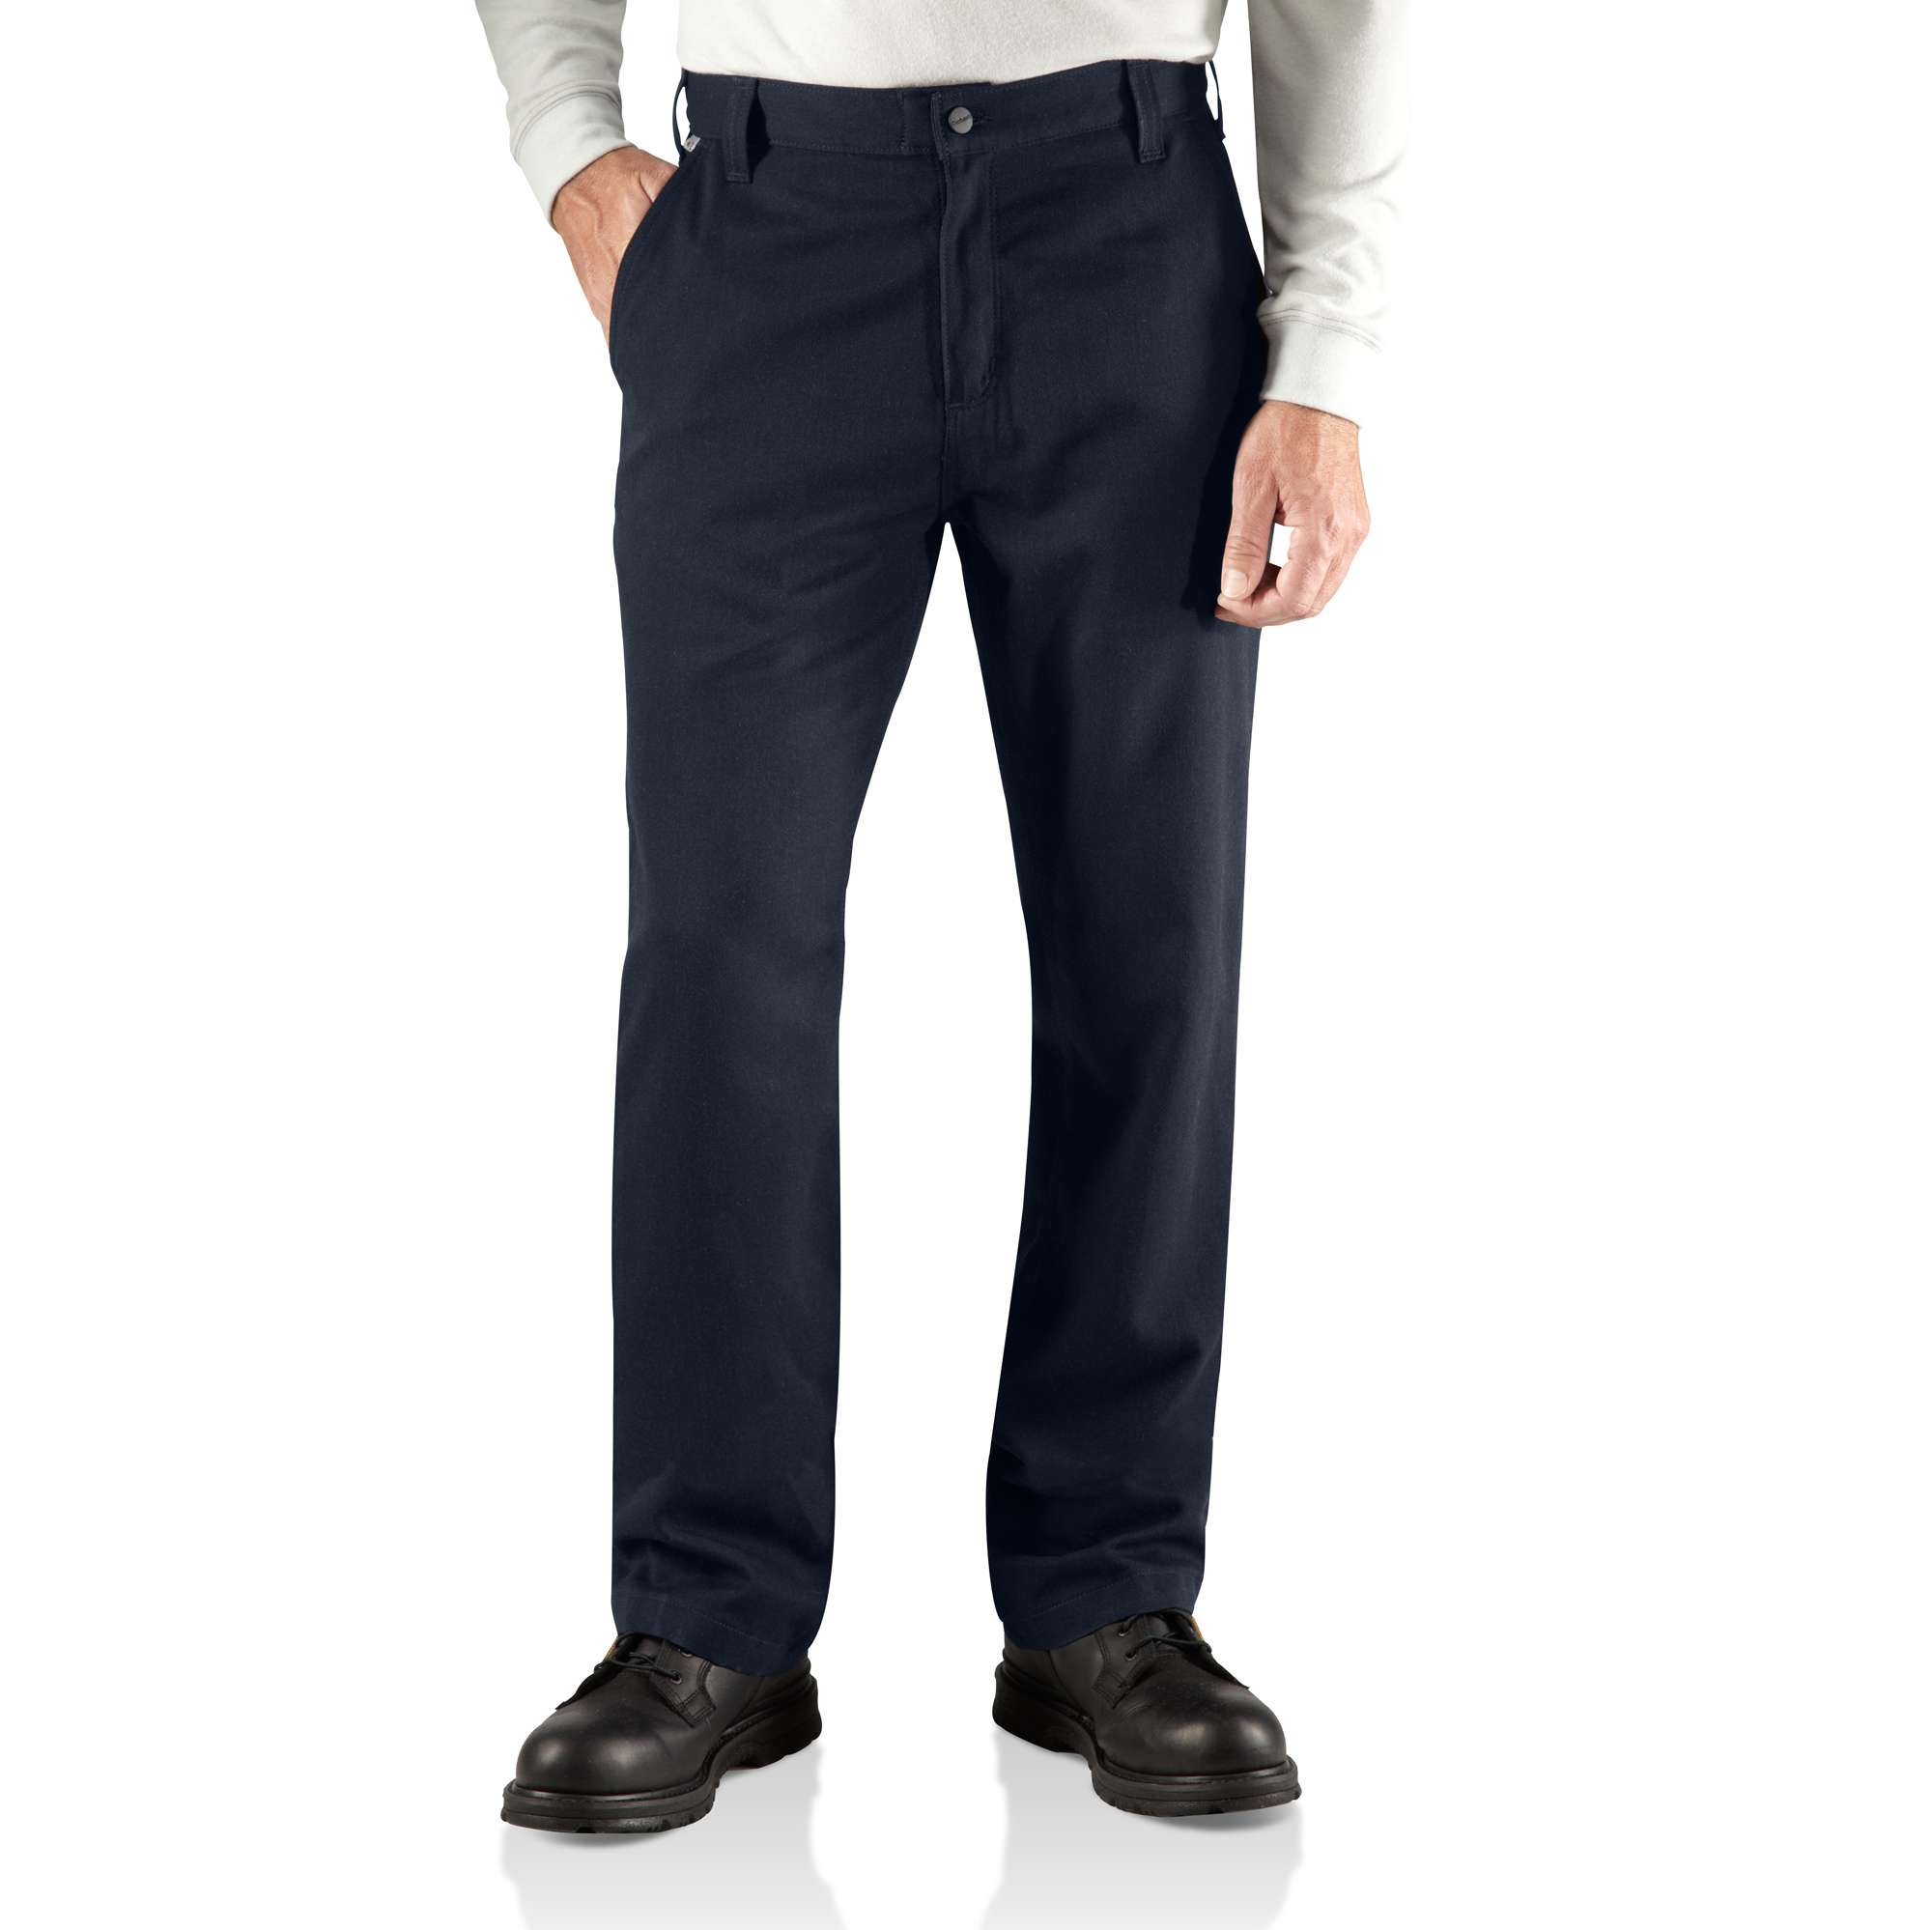 carhartt flame-resistant work pant - relaxed fit dark navy 33 x 36